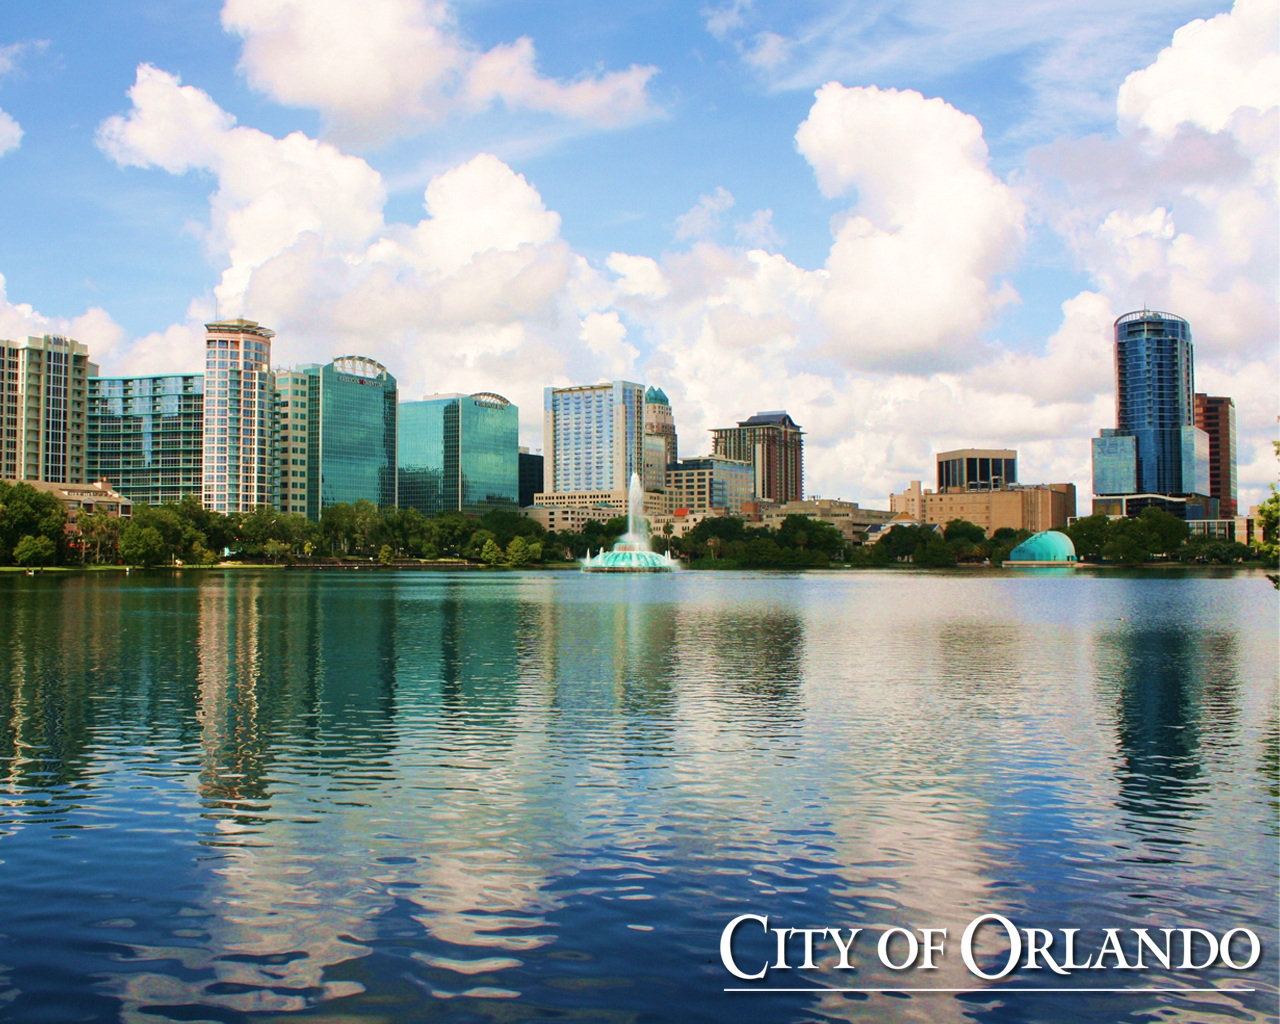 City of Orlando HD Wallpaper HD Wallpapers HD Backgrounds 1280x1024